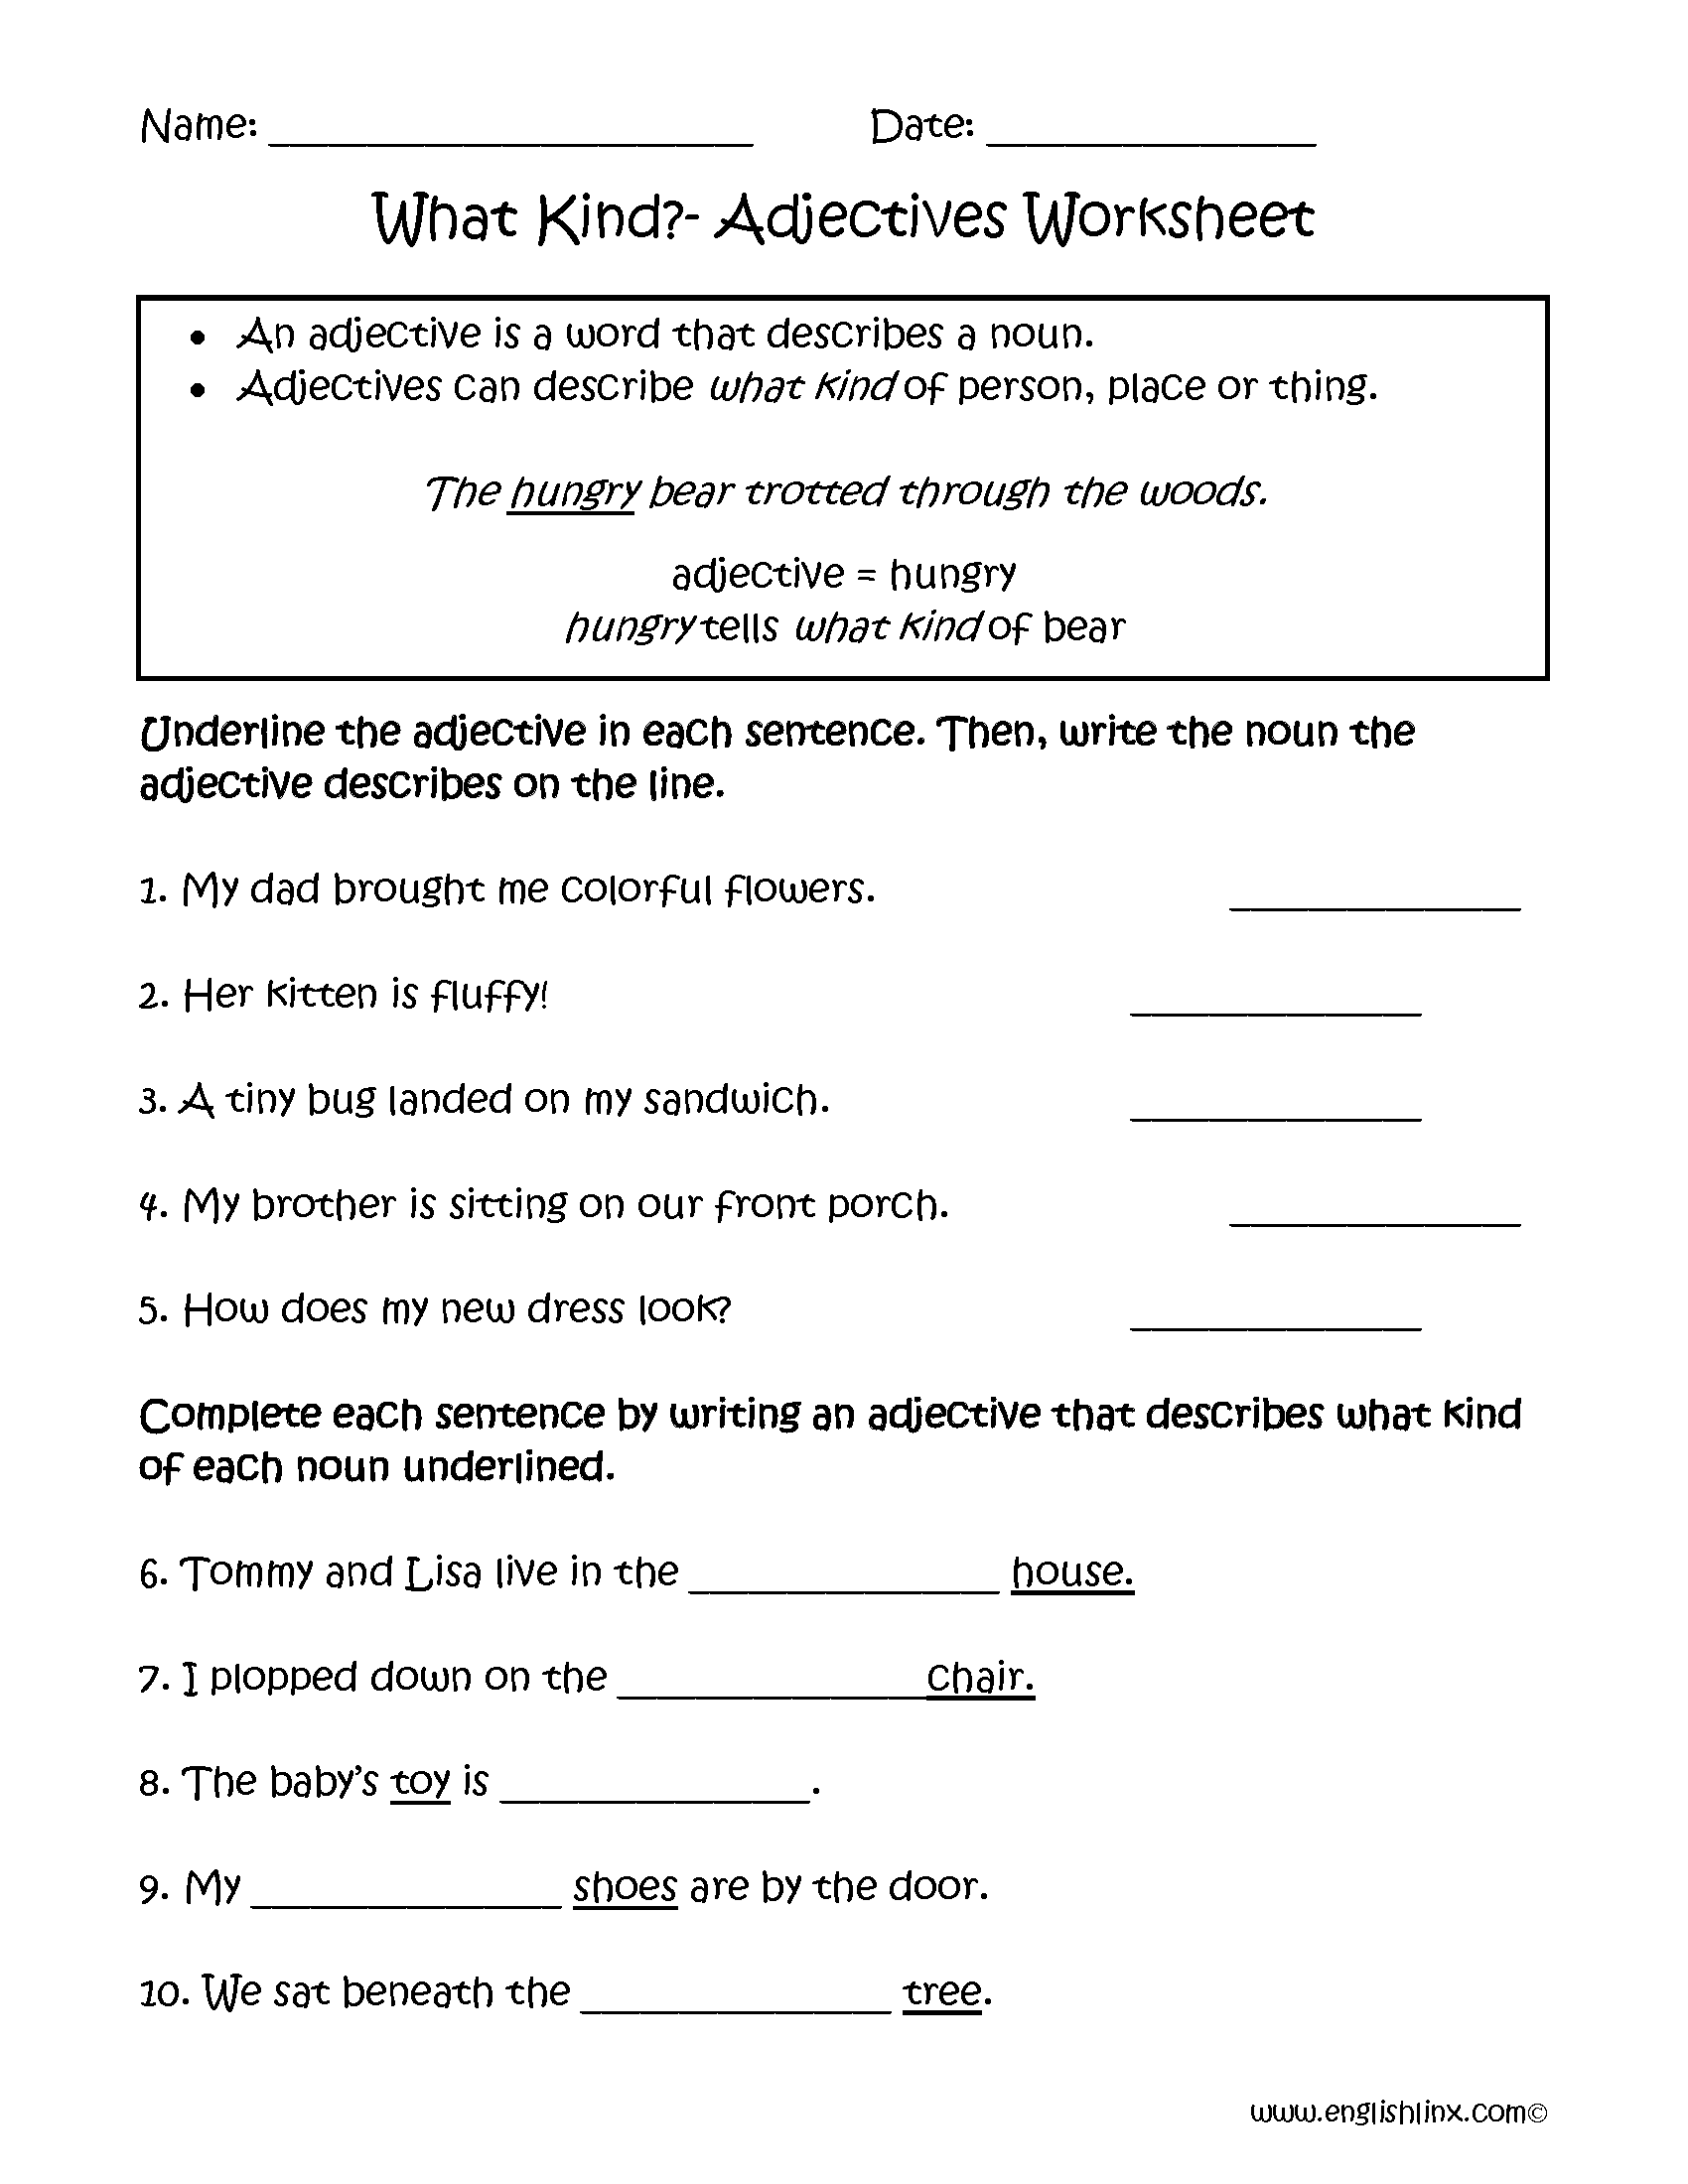 Worksheet Adjectives Worksheet Grade 2 adjectives worksheets regular worksheets